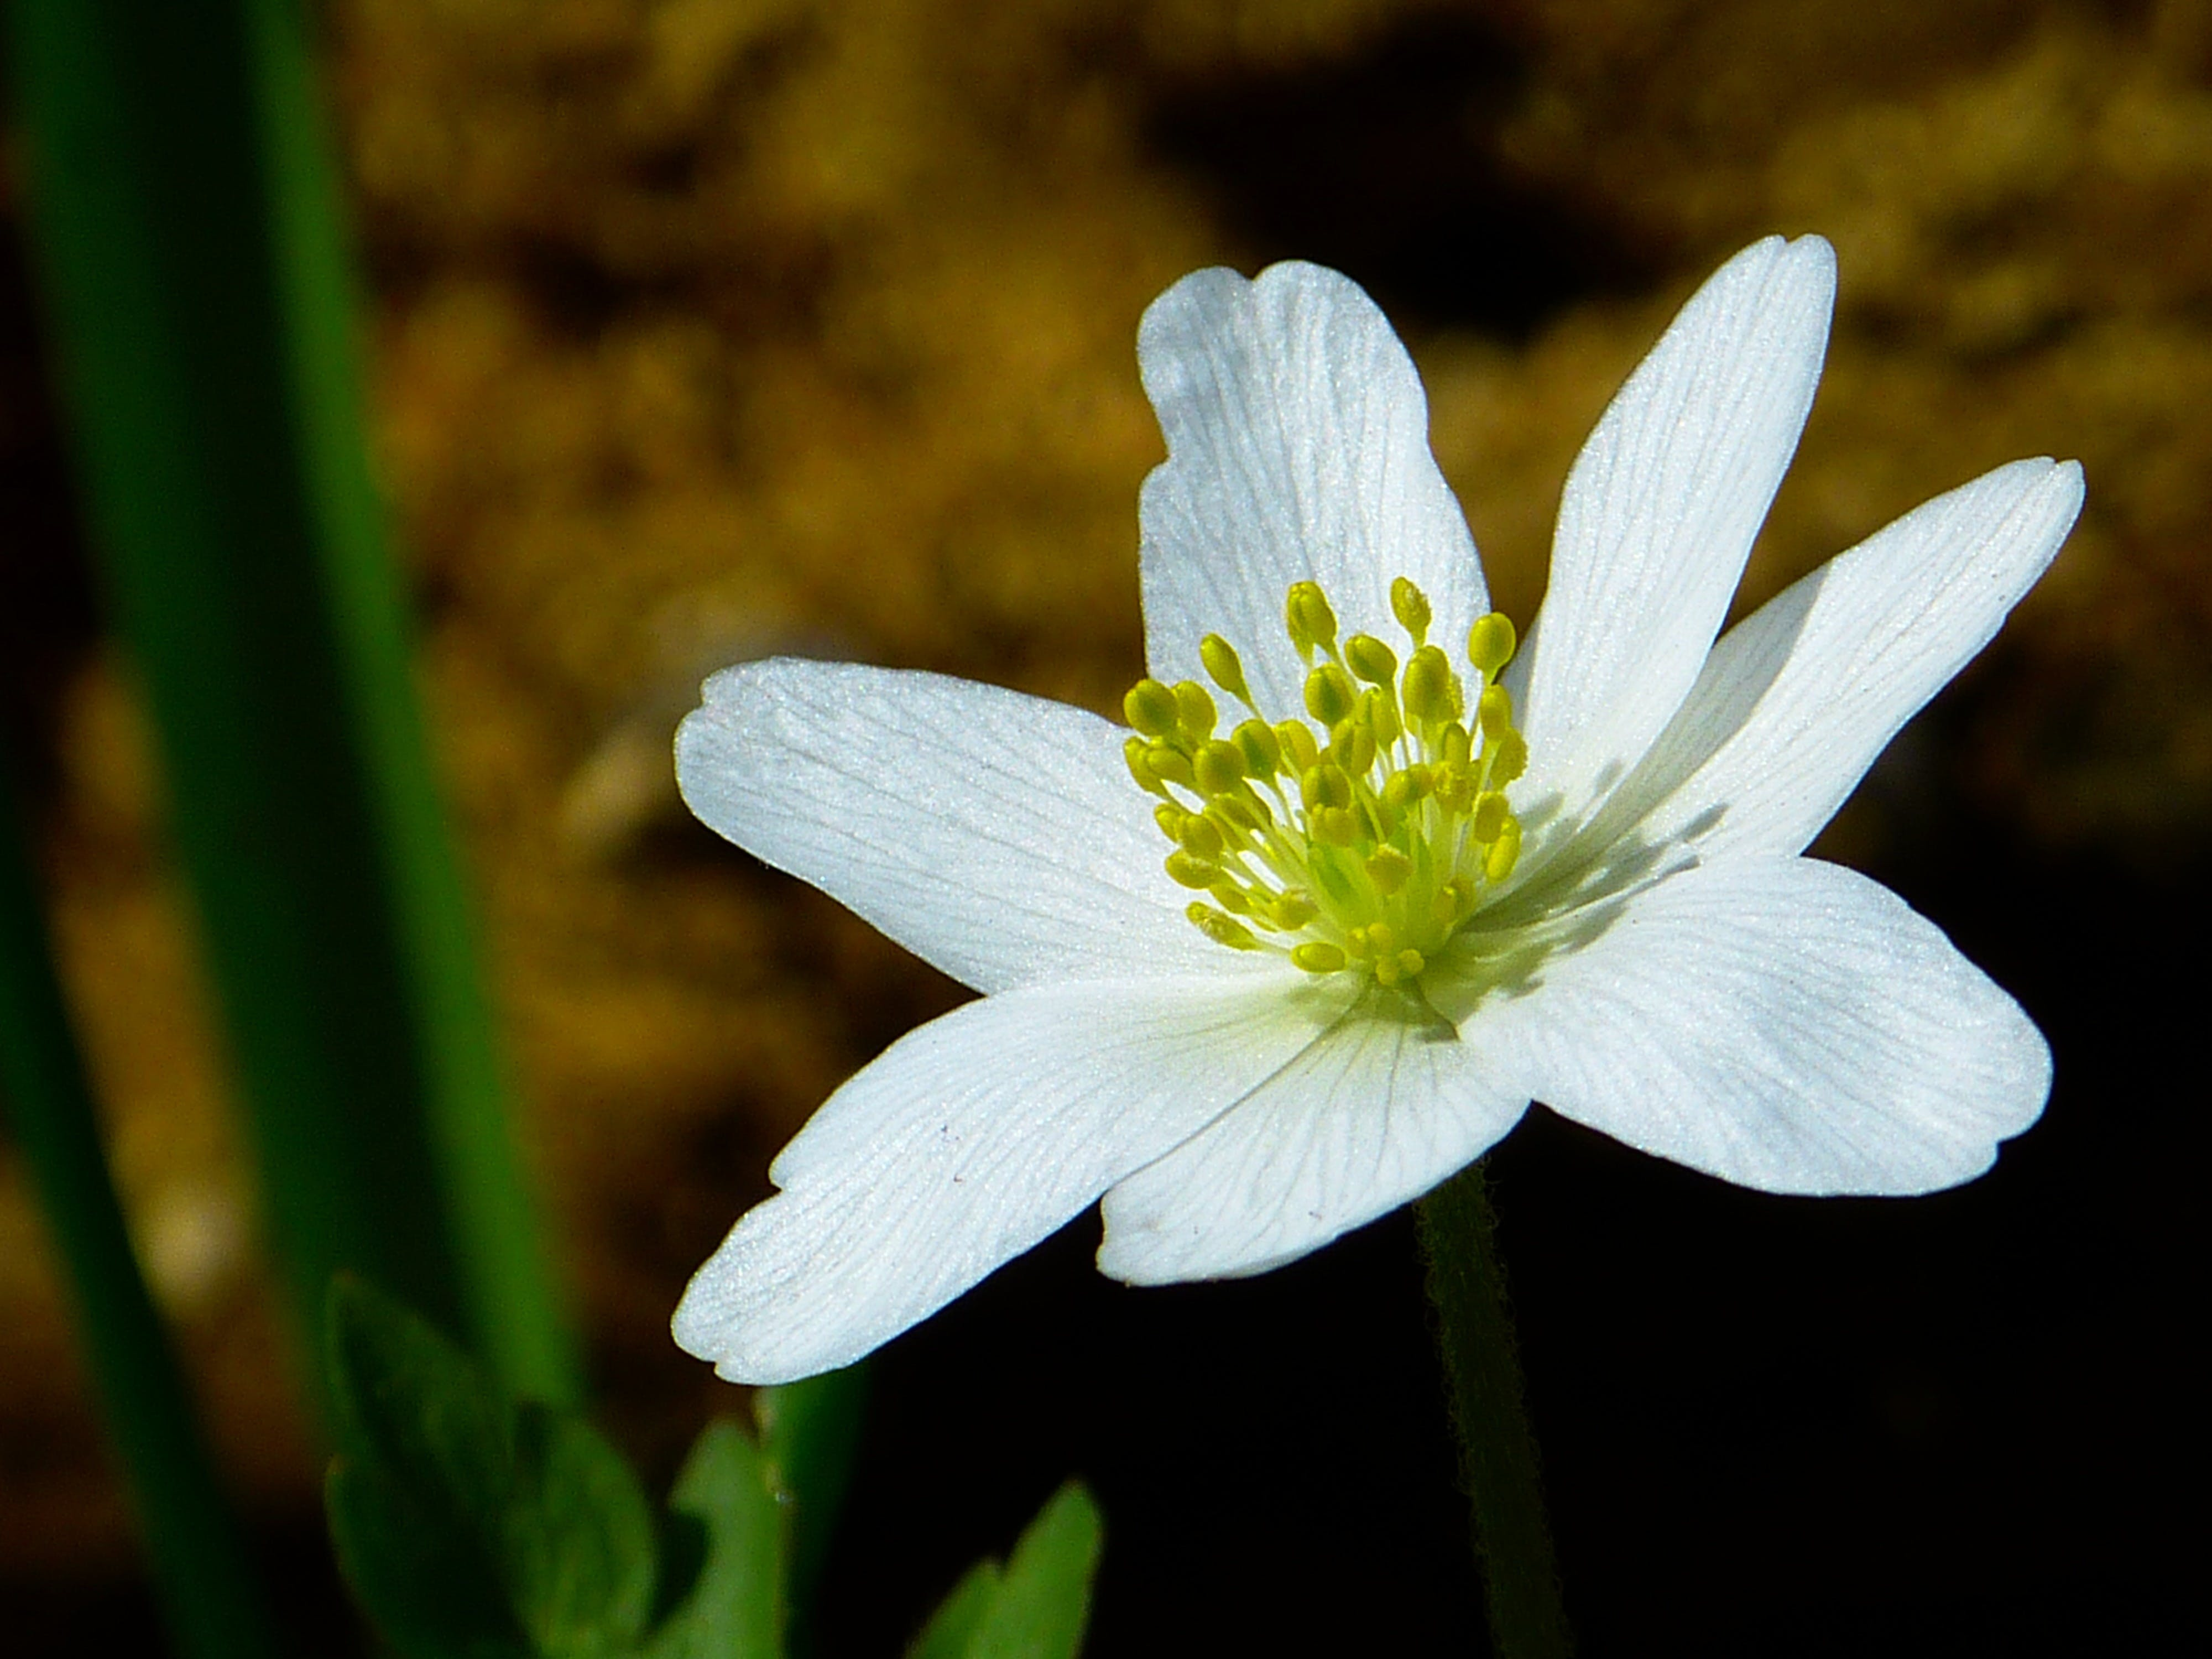 White and Green Flower in Macro Shot Photography